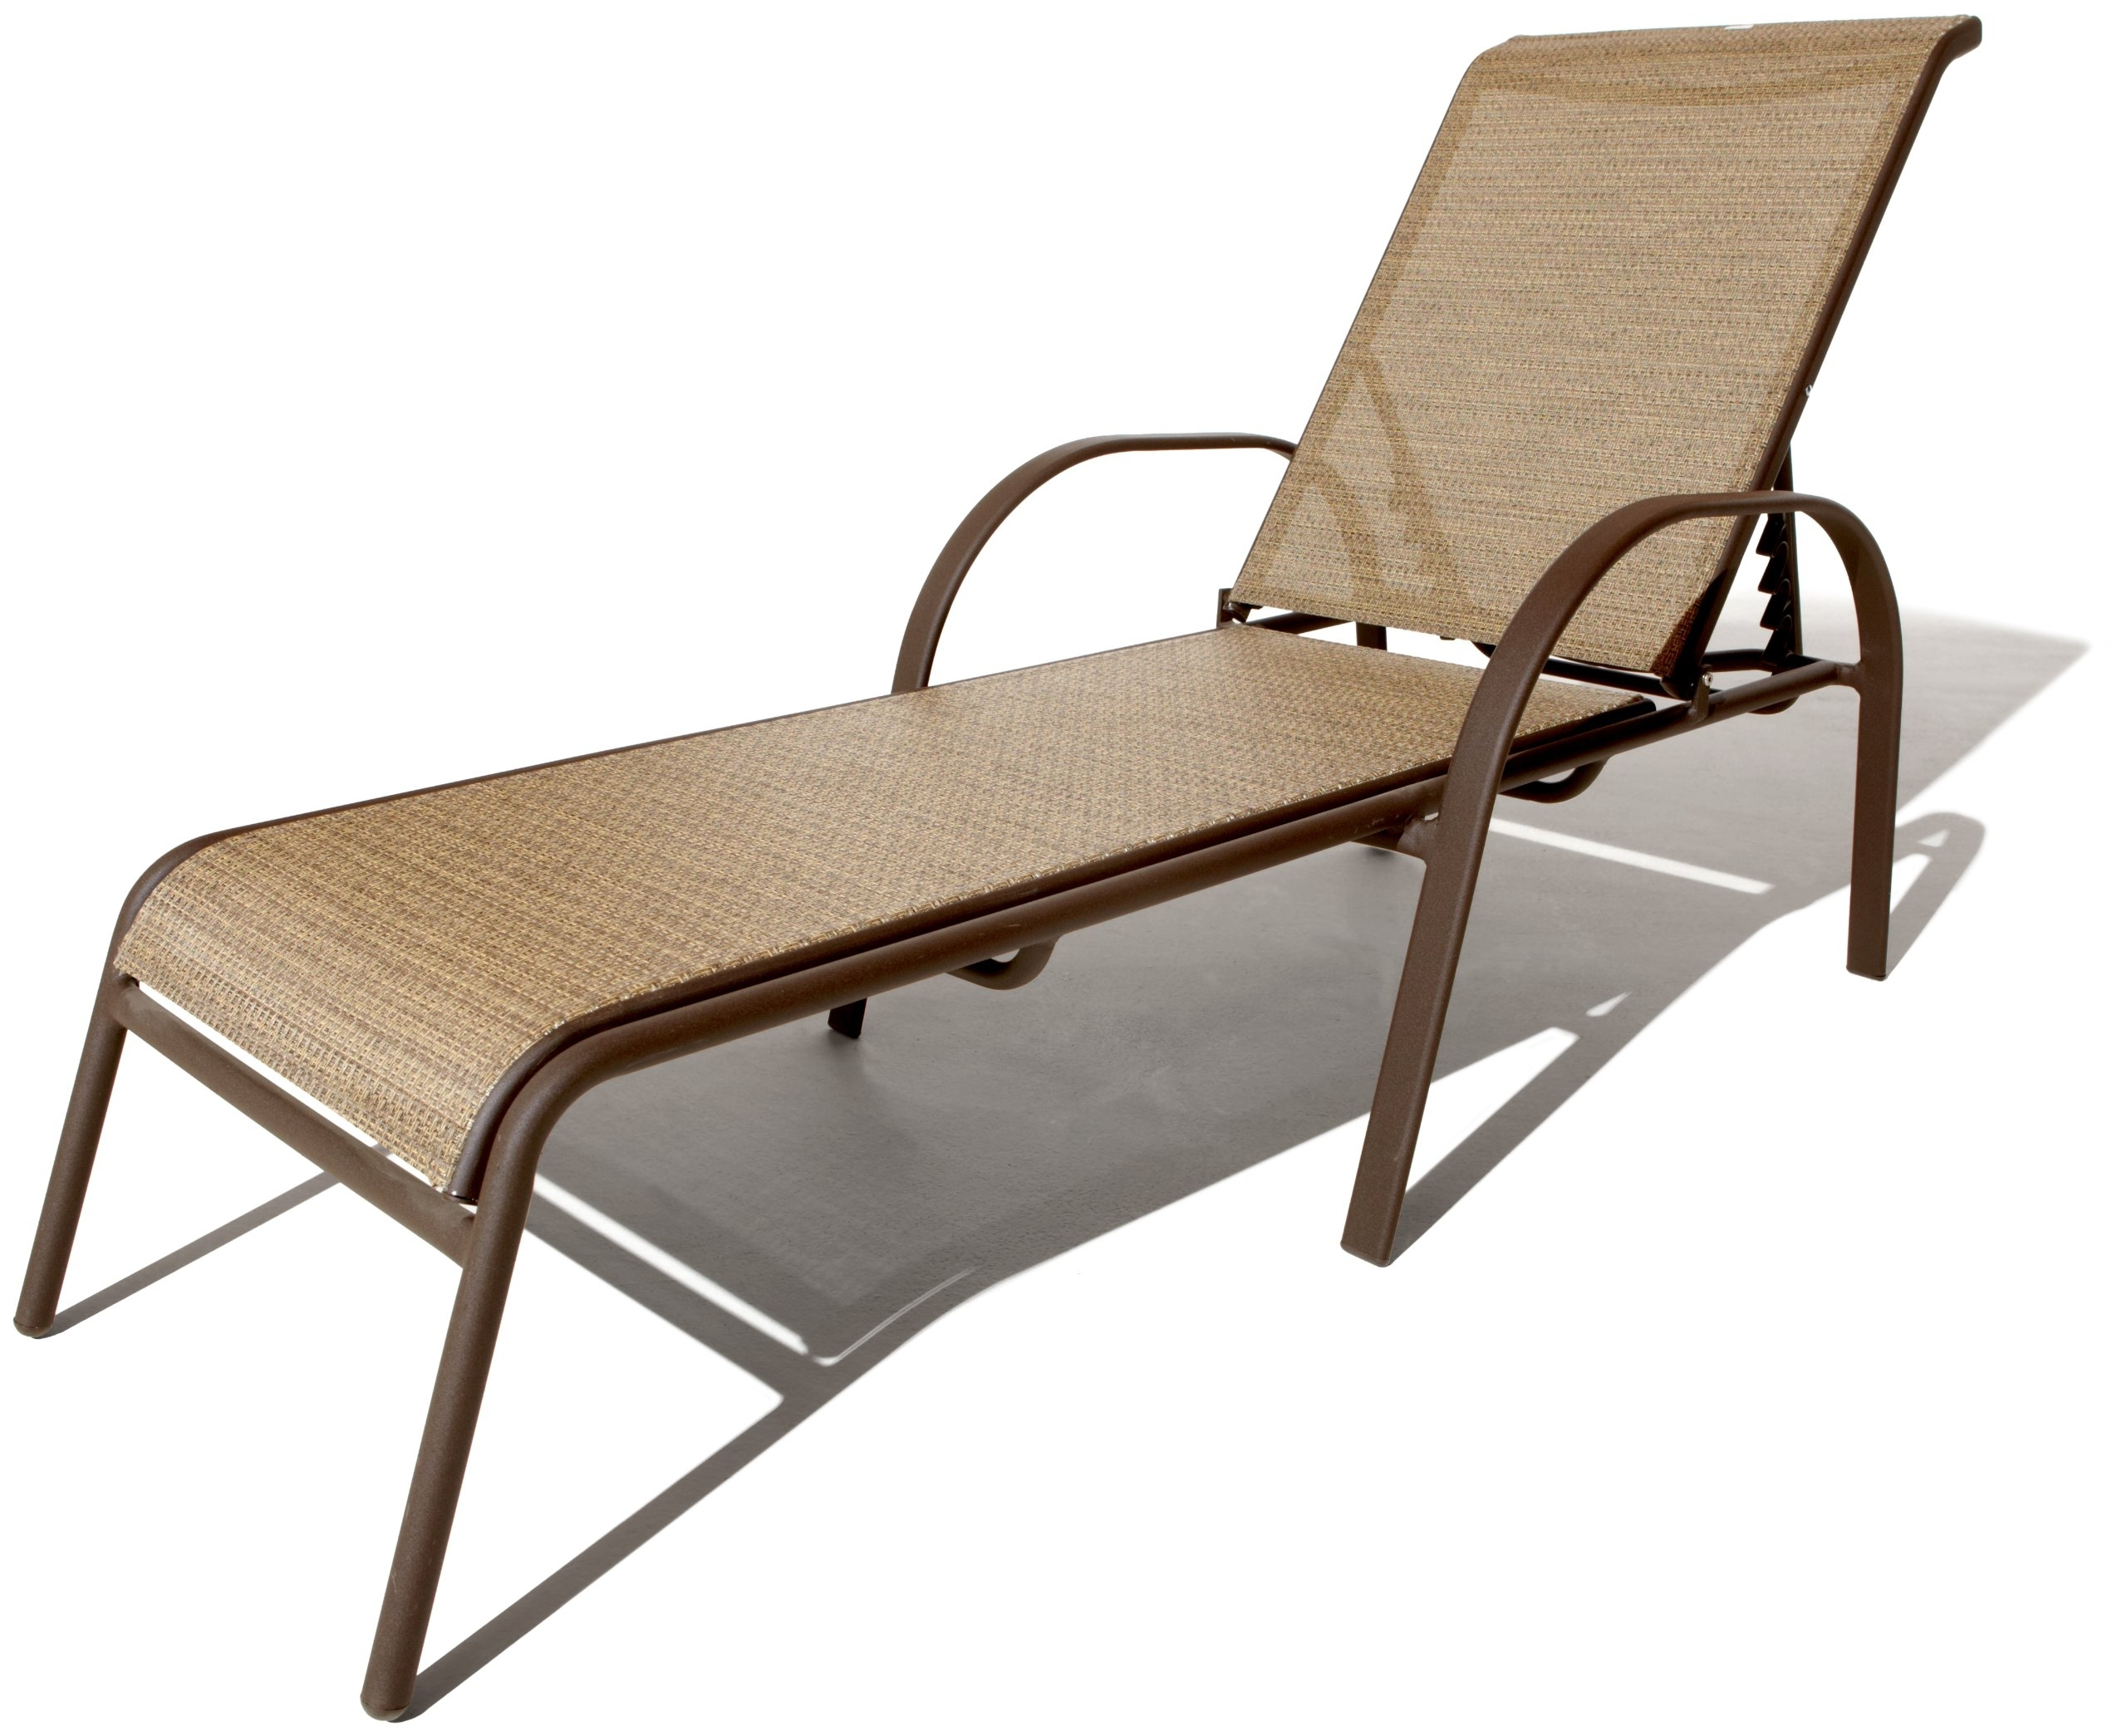 Chaise Outdoor Lounge Chairs Throughout Best And Newest Lounge Chairs : Top Camping Chairs Cushion Lounge Chair Cheap (View 5 of 15)